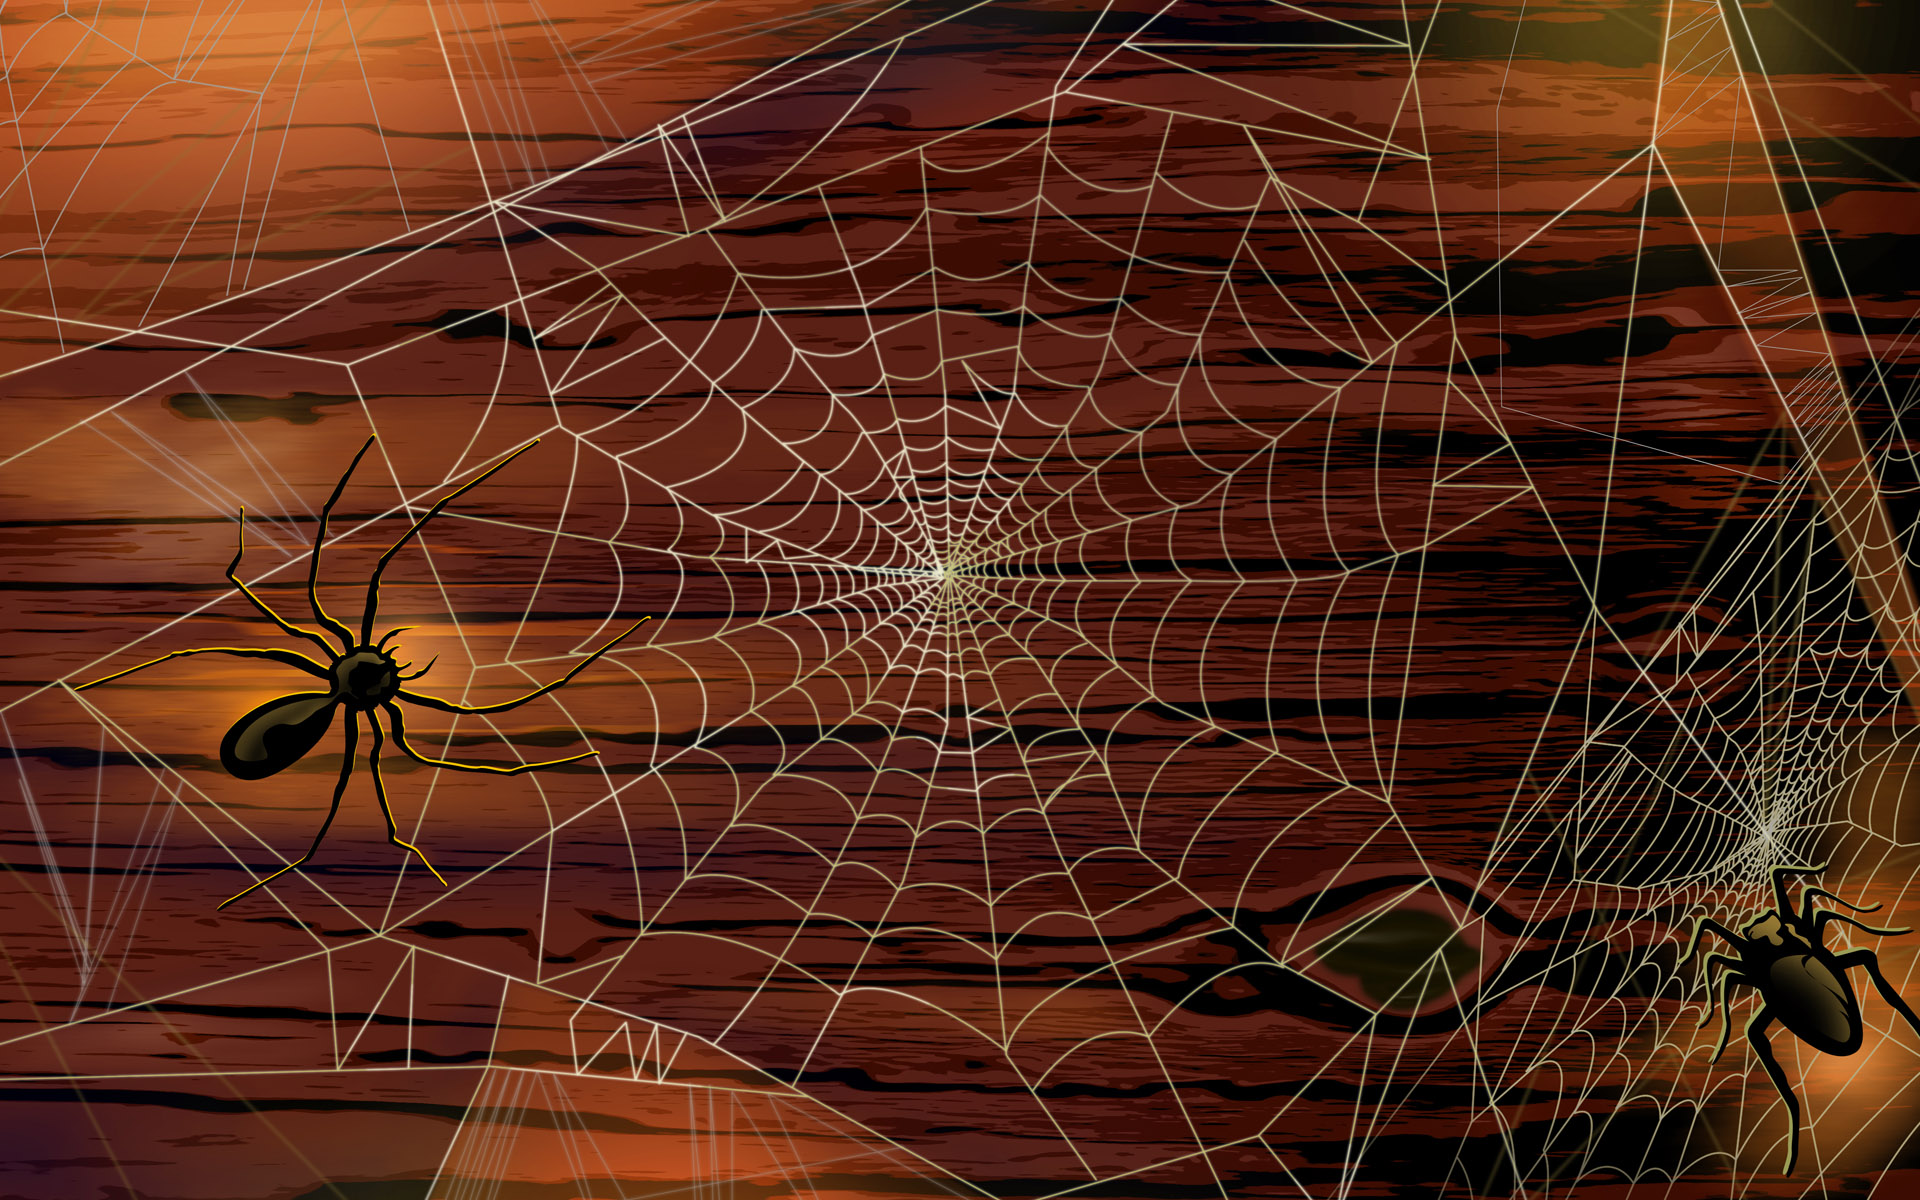 scary halloween 2012 spiders hd wallpaper 2 - Halloween Spiders